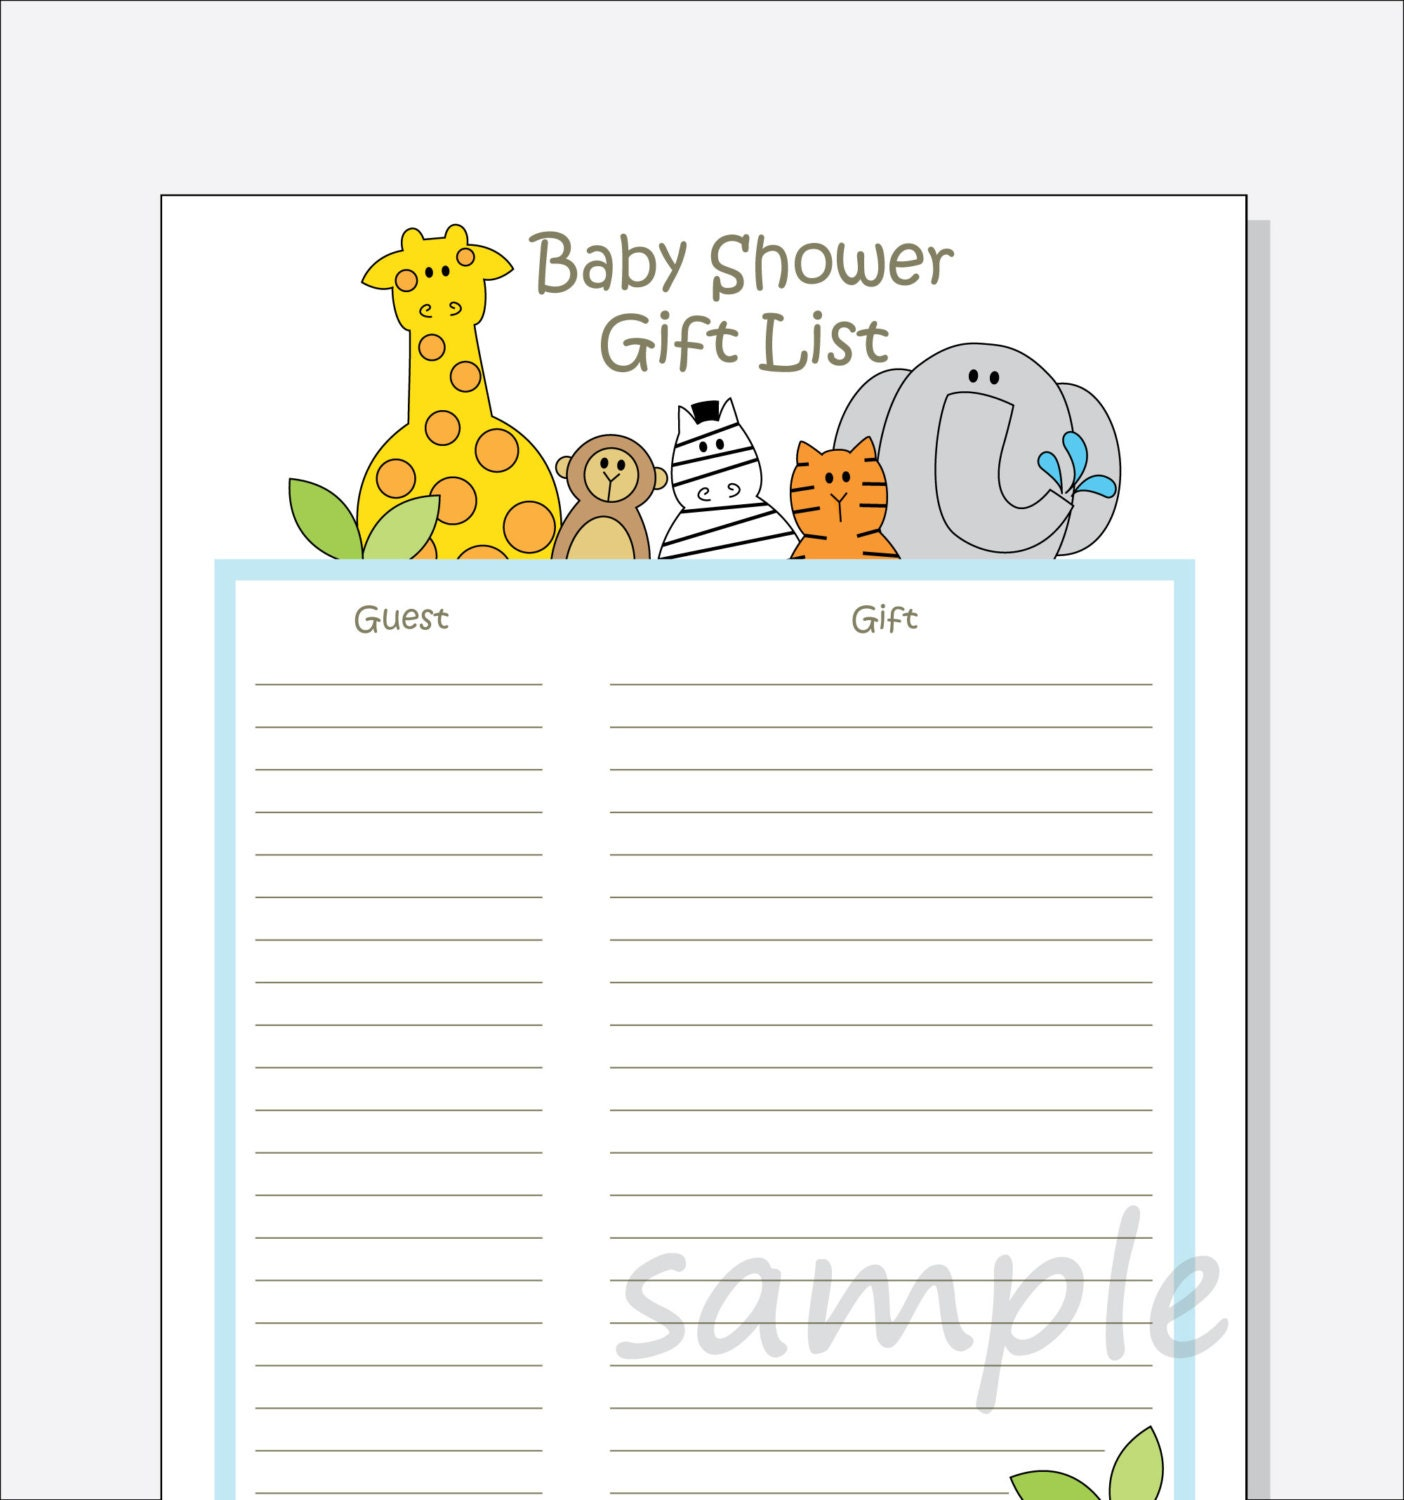 Baby Shower Gift List Printable | wblqual.com